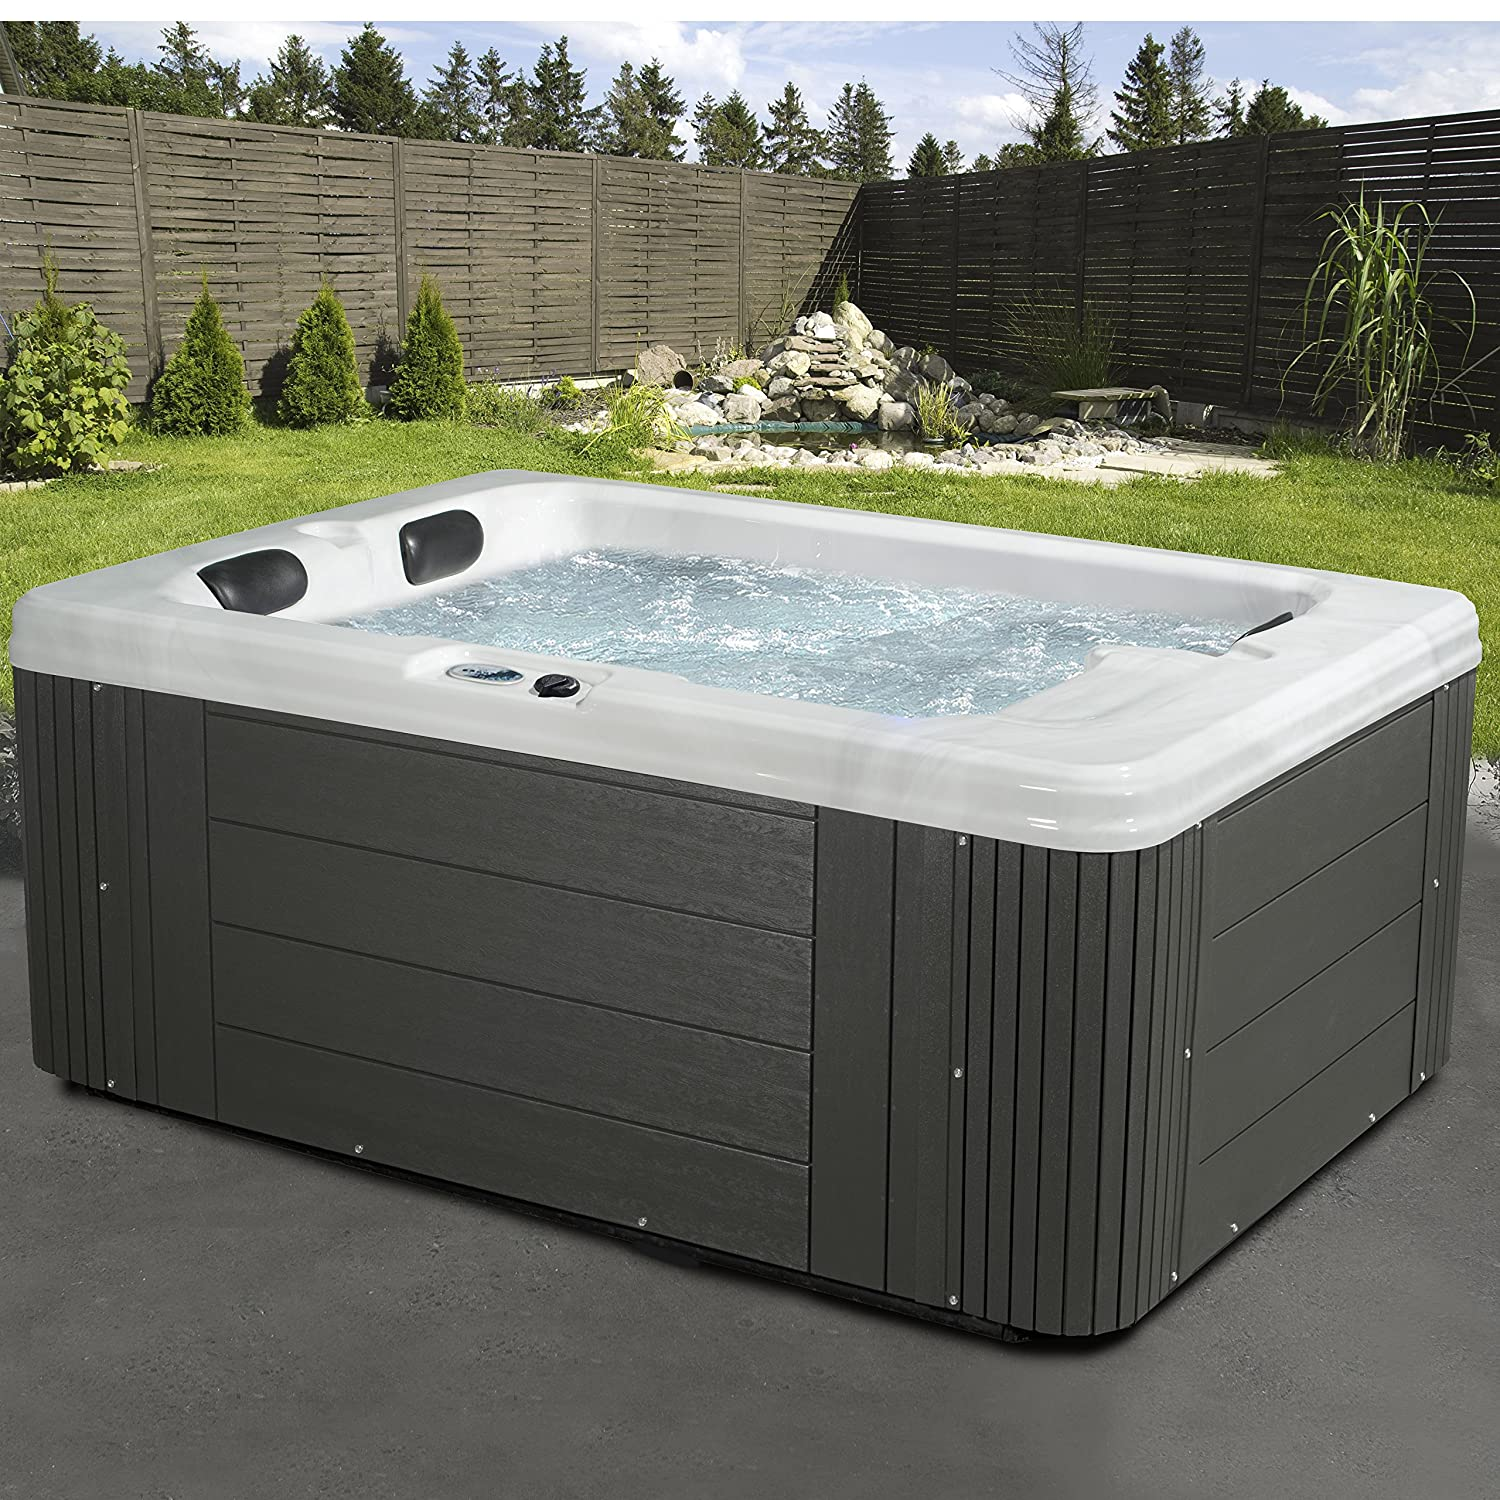 2 Person Hot Tub: A Striking Review of the #1 Rated Option Online!